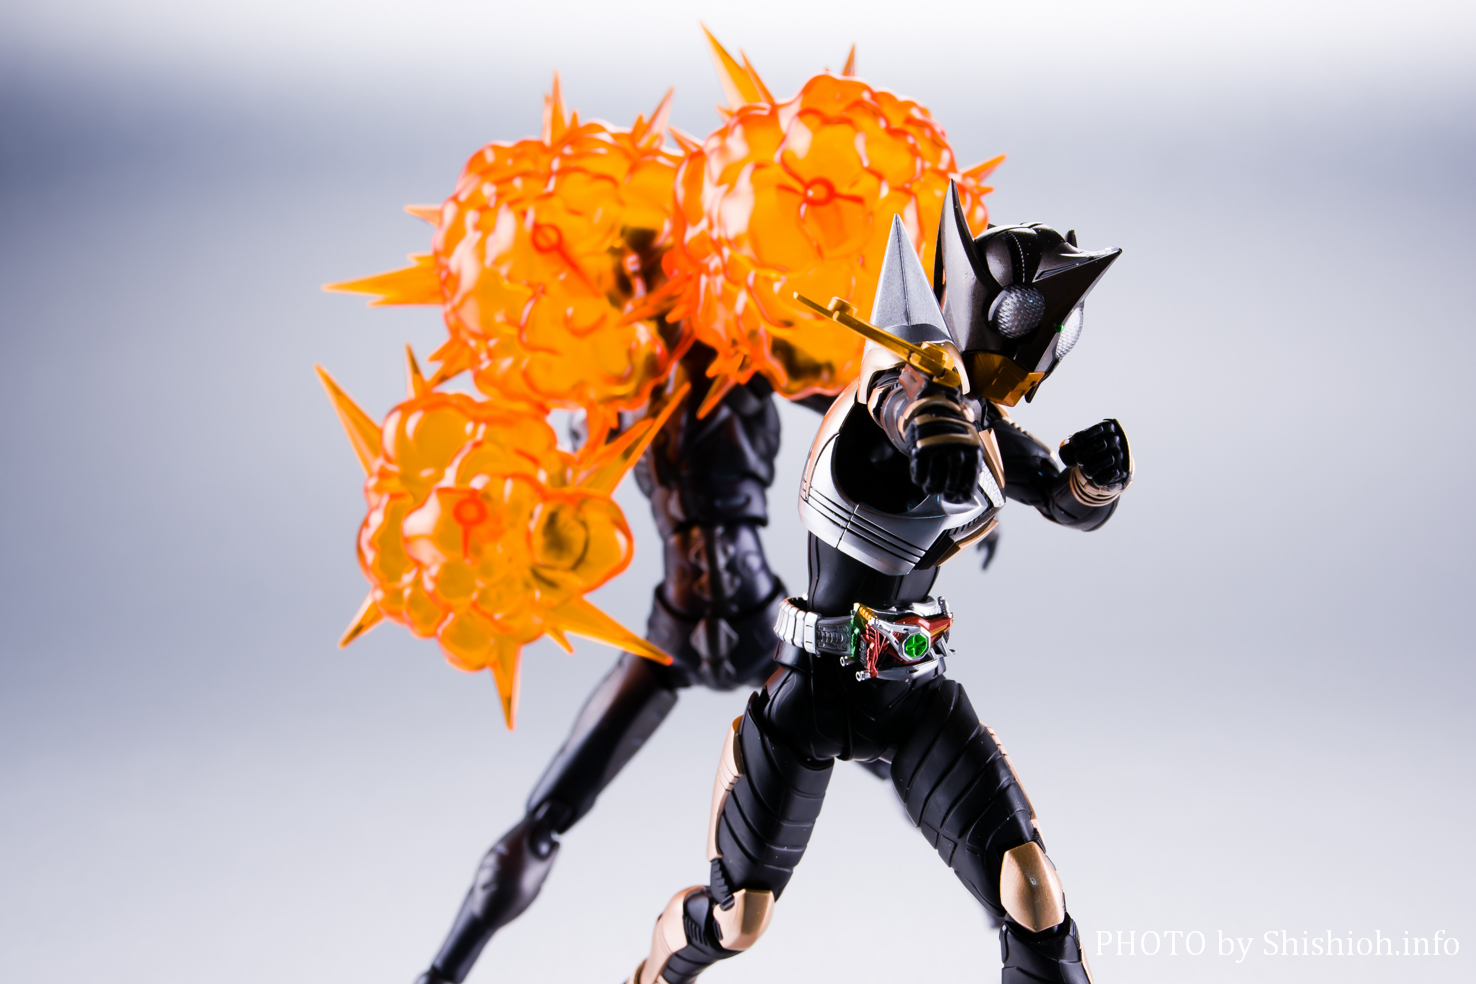 S.H.Figuarts(真骨彫製法) 仮面ライダーパンチホッパー